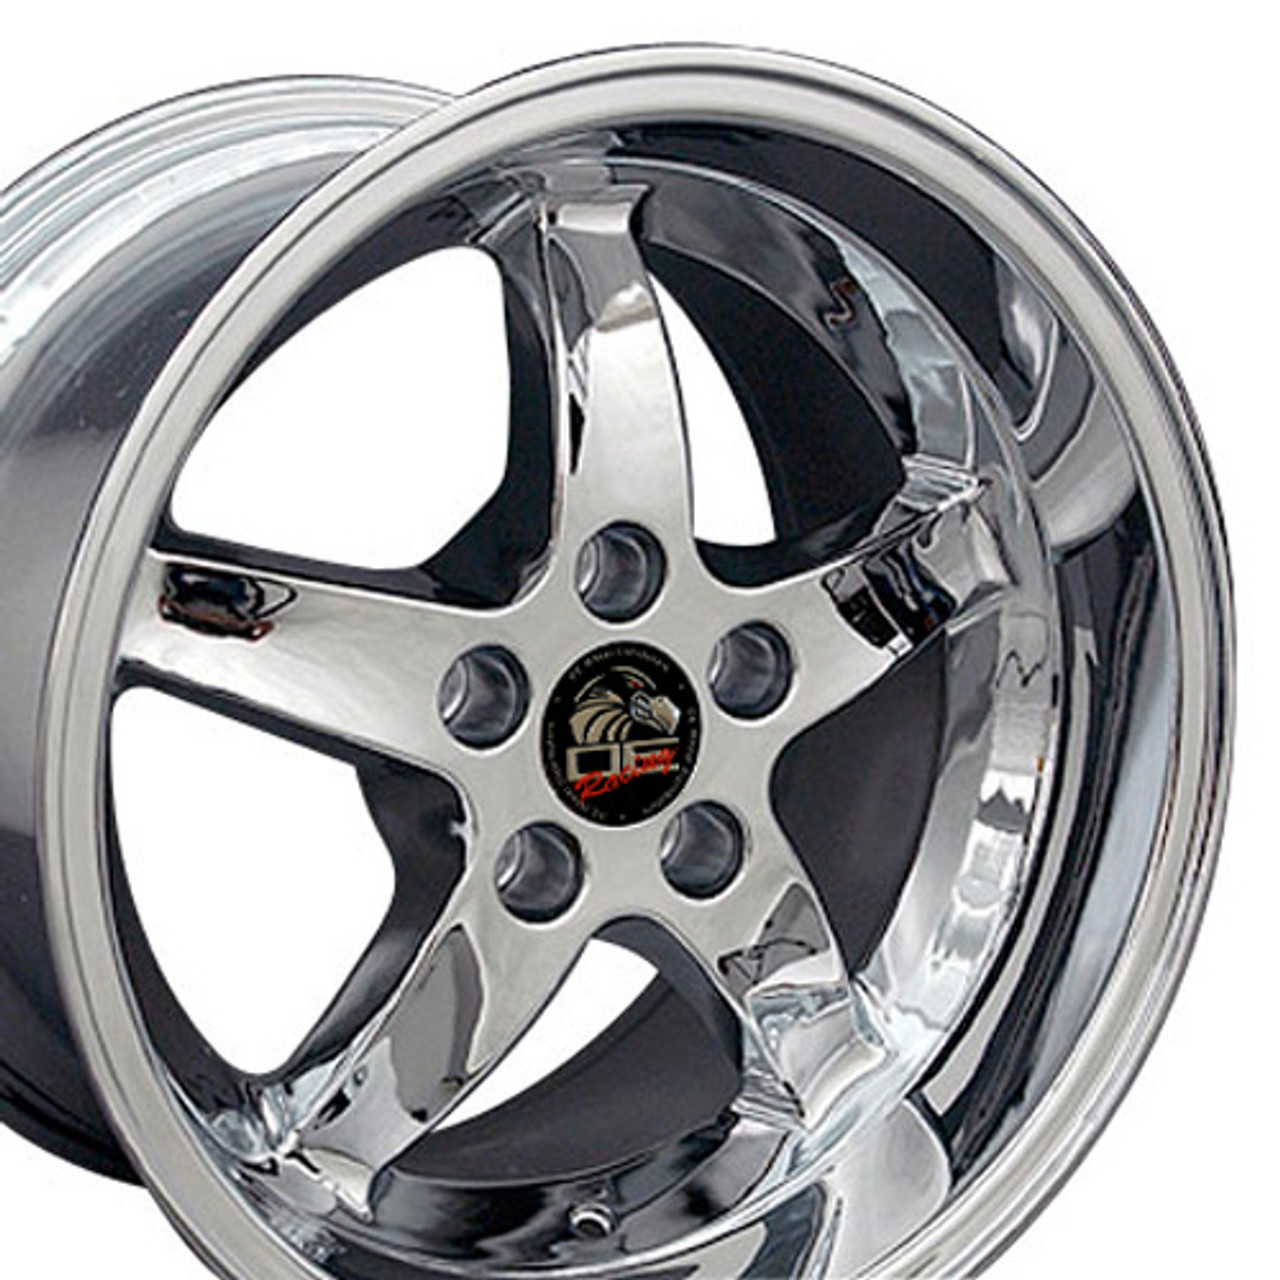 Ford Mustang Rims >> 17 Fits Ford Mustang Cobra R 5 Lug Wheels Chrome 17x10 5 Rims